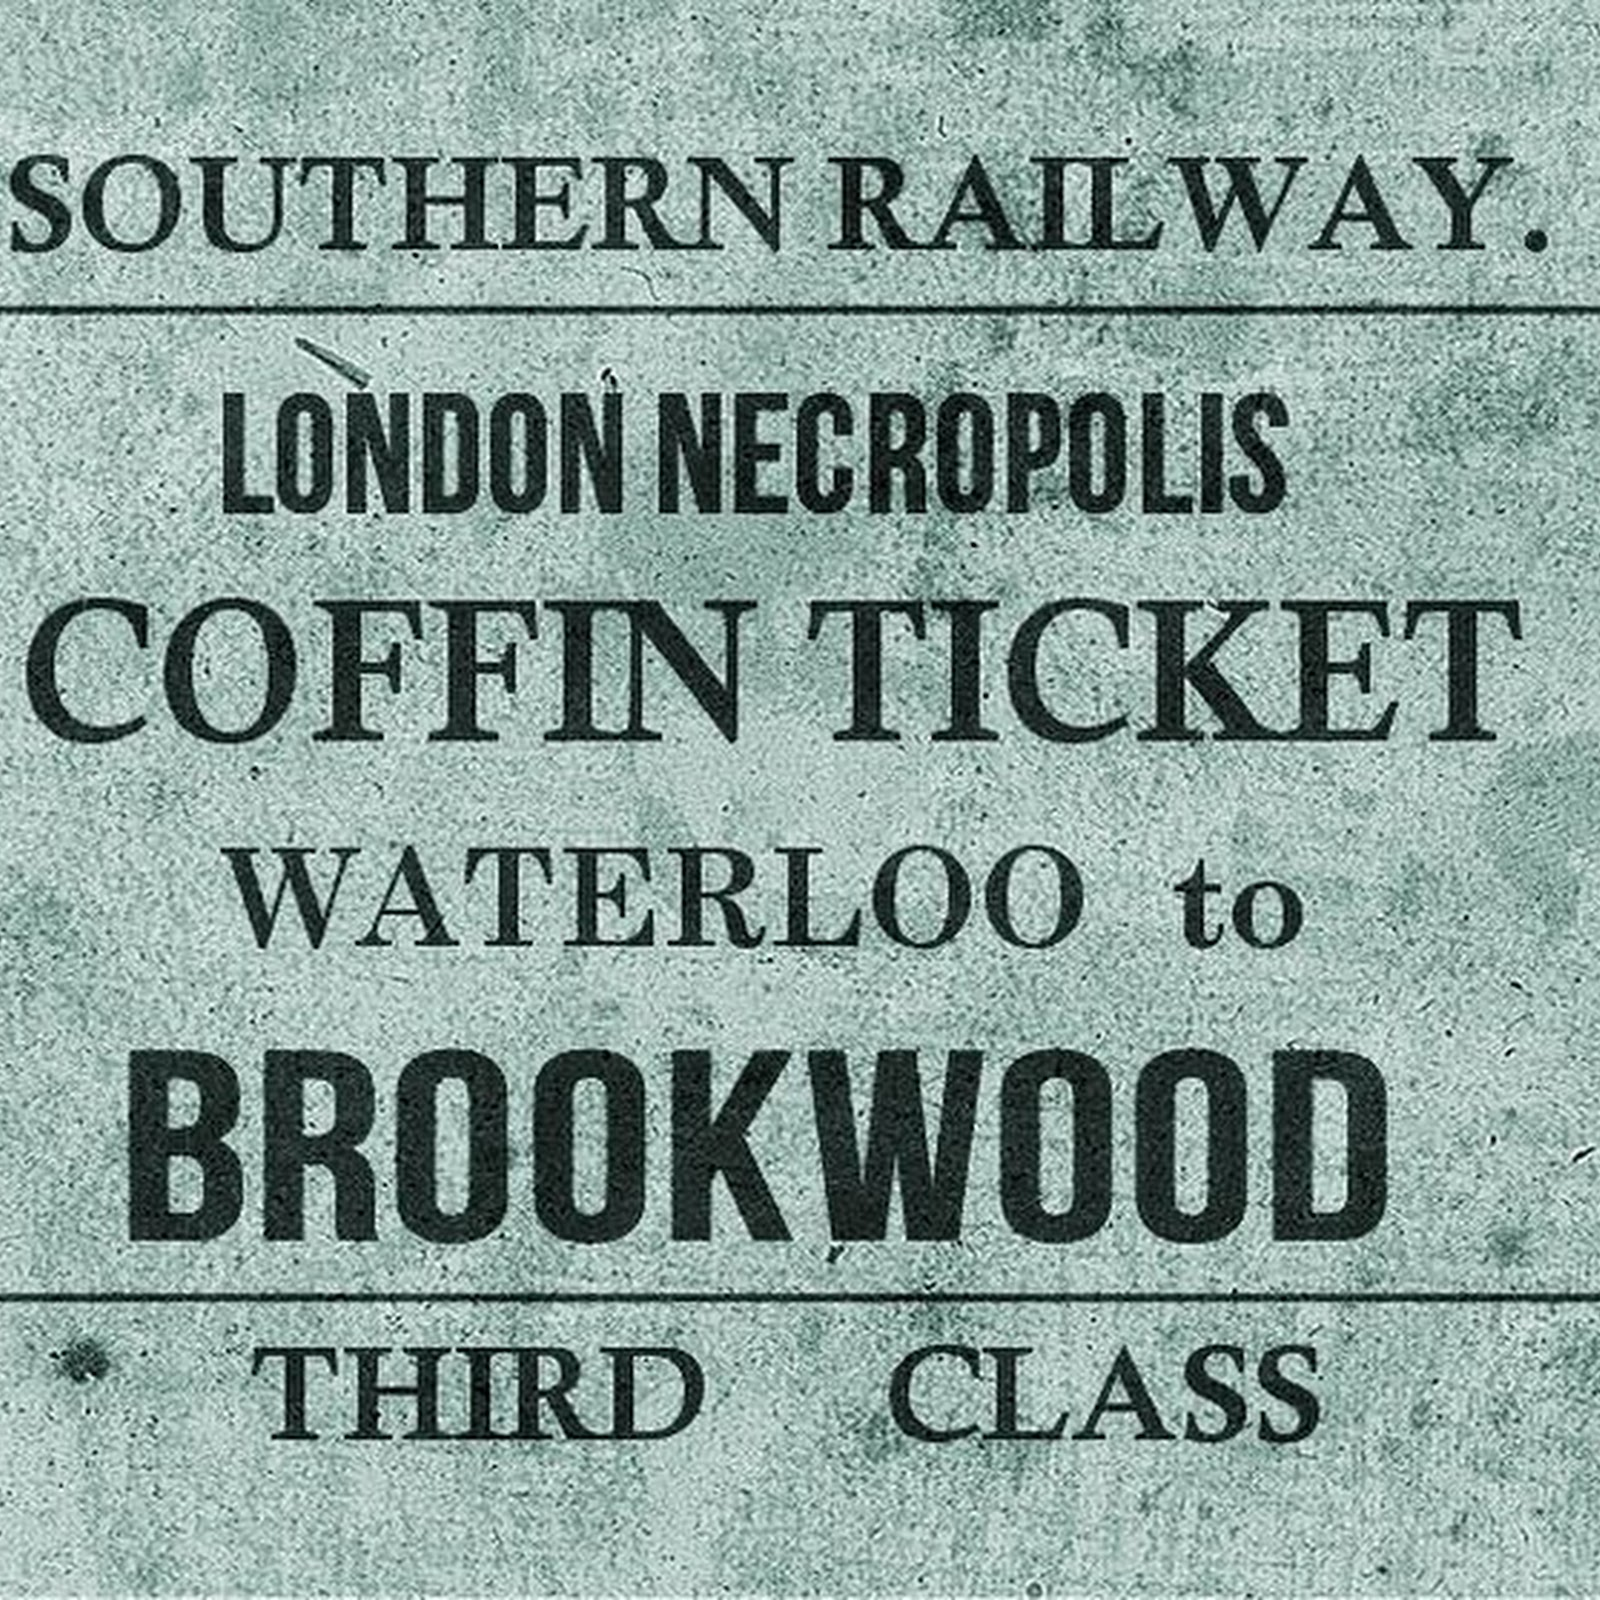 London Necropolis Railway: The Train For The Dead